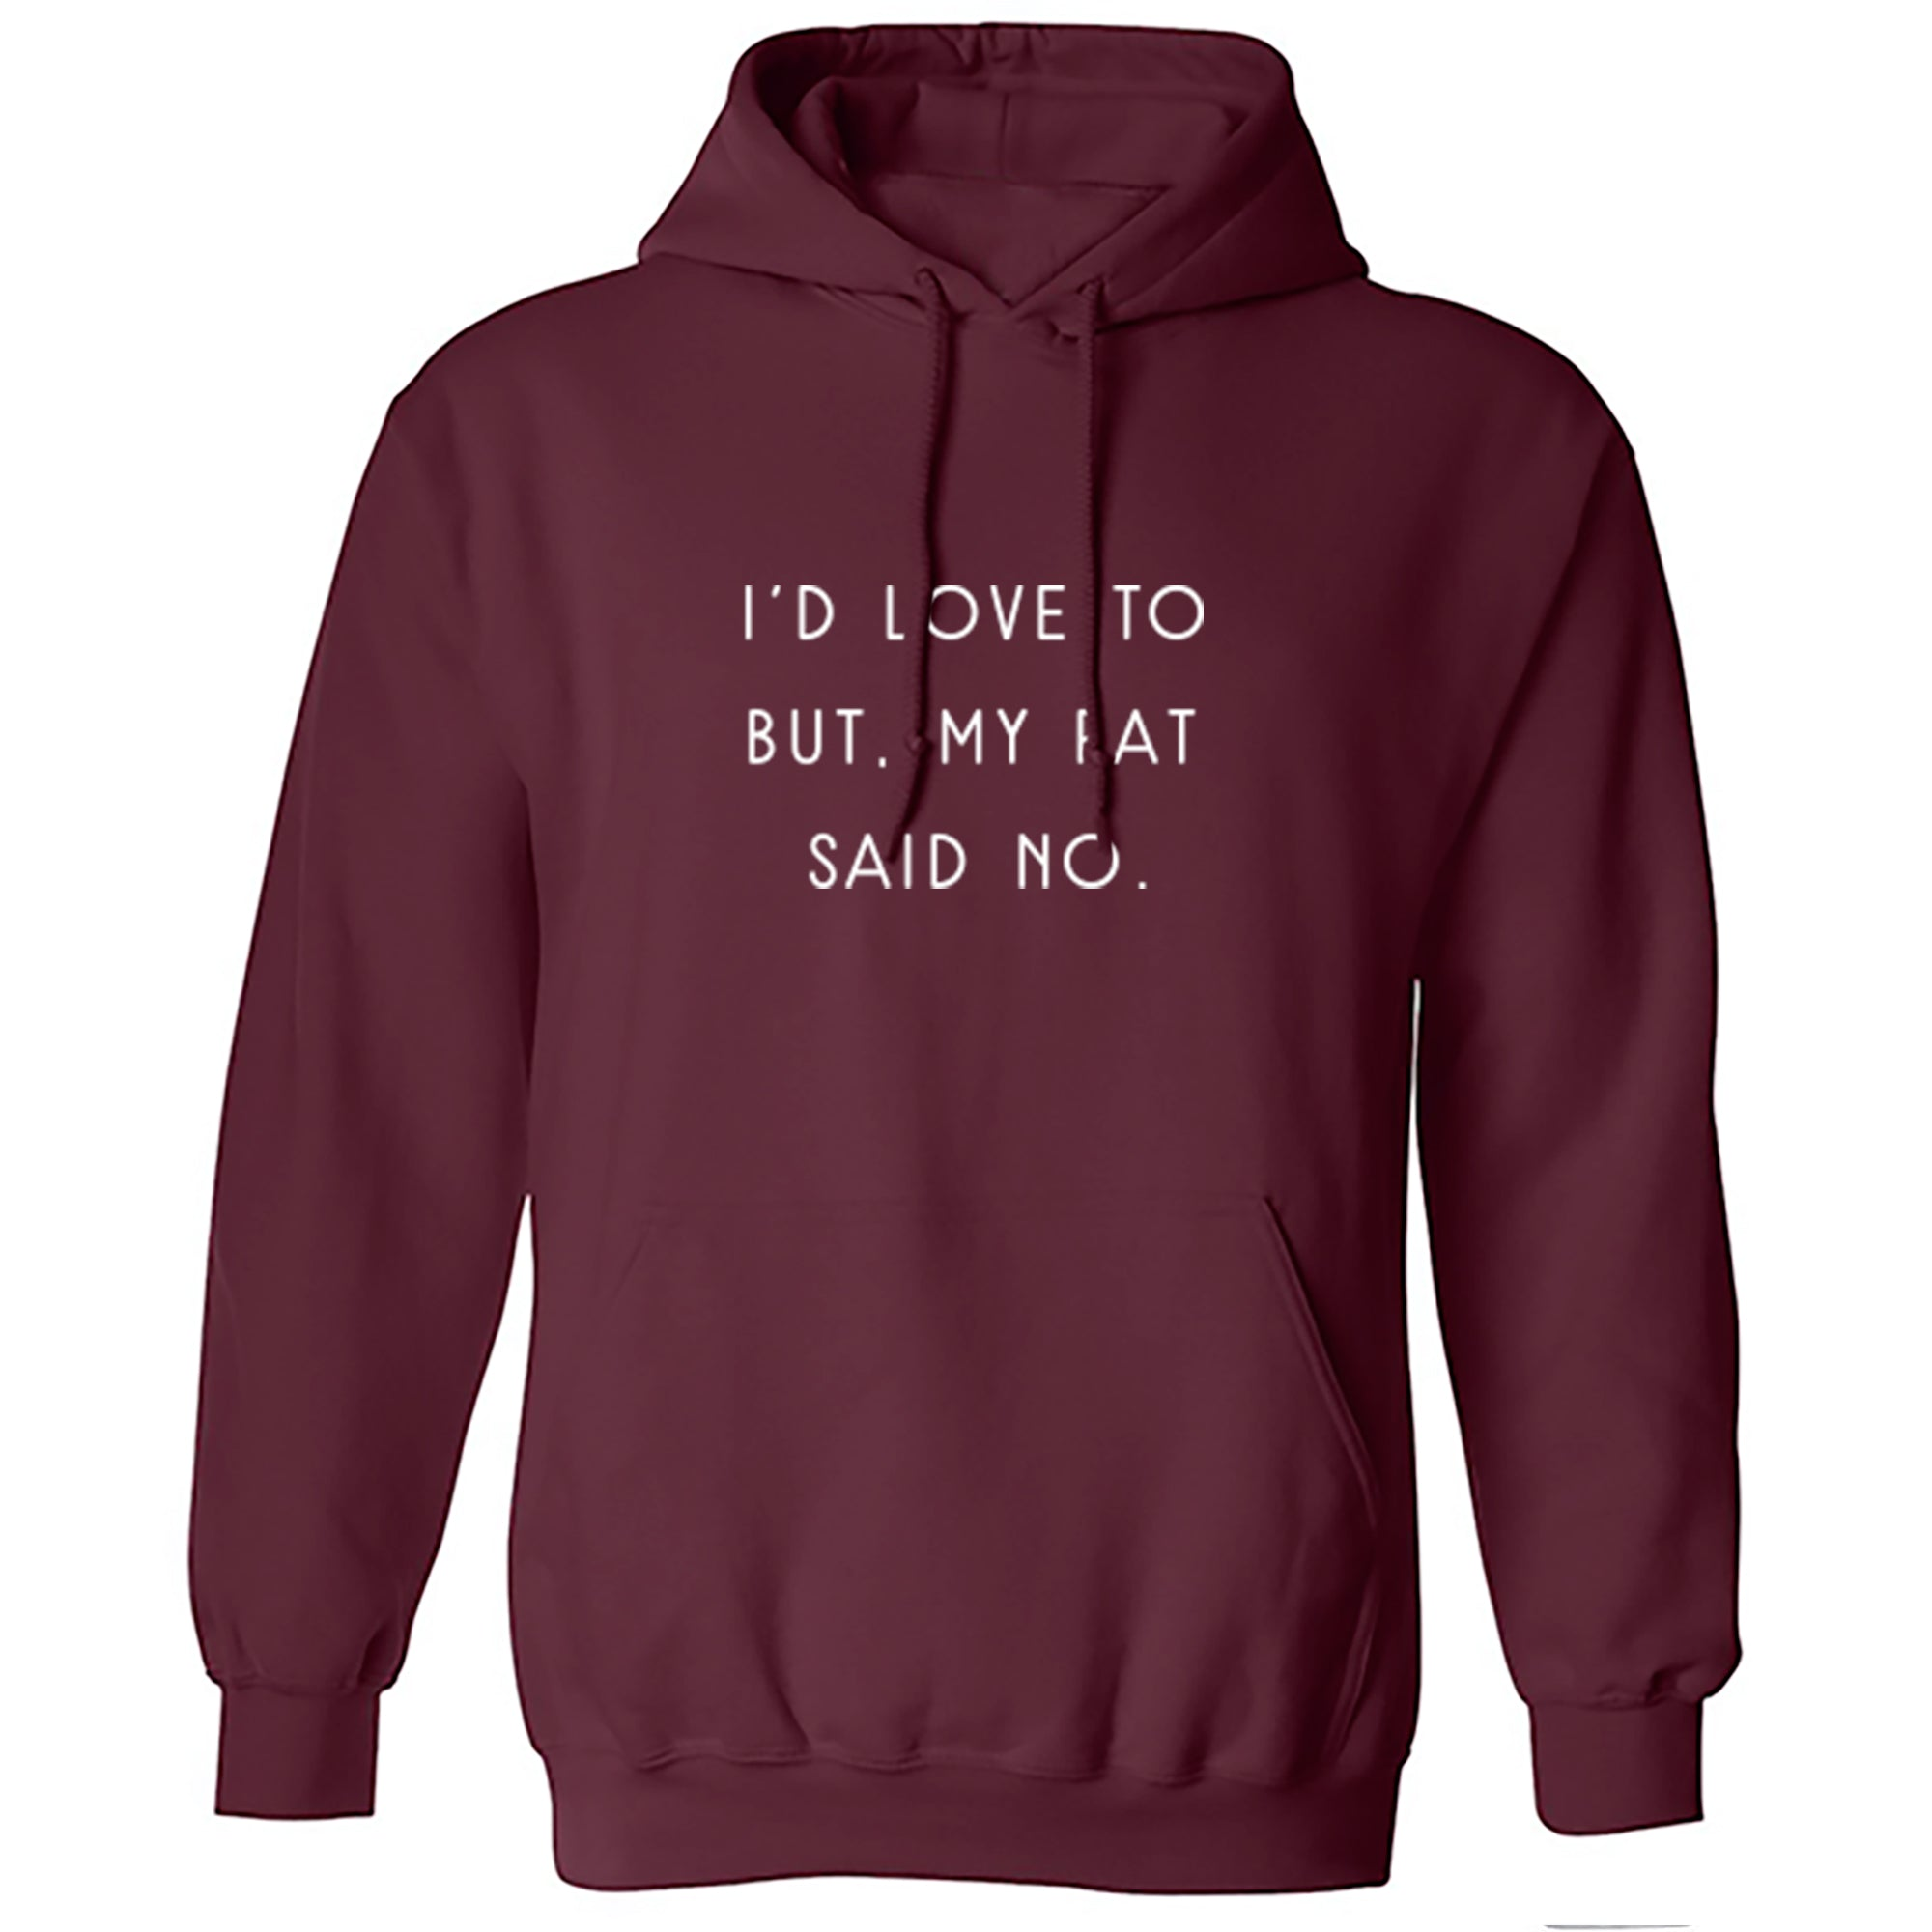 I'd Love To But, My Rat Said No Unisex Hoodie S1062 - Illustrated Identity Ltd.